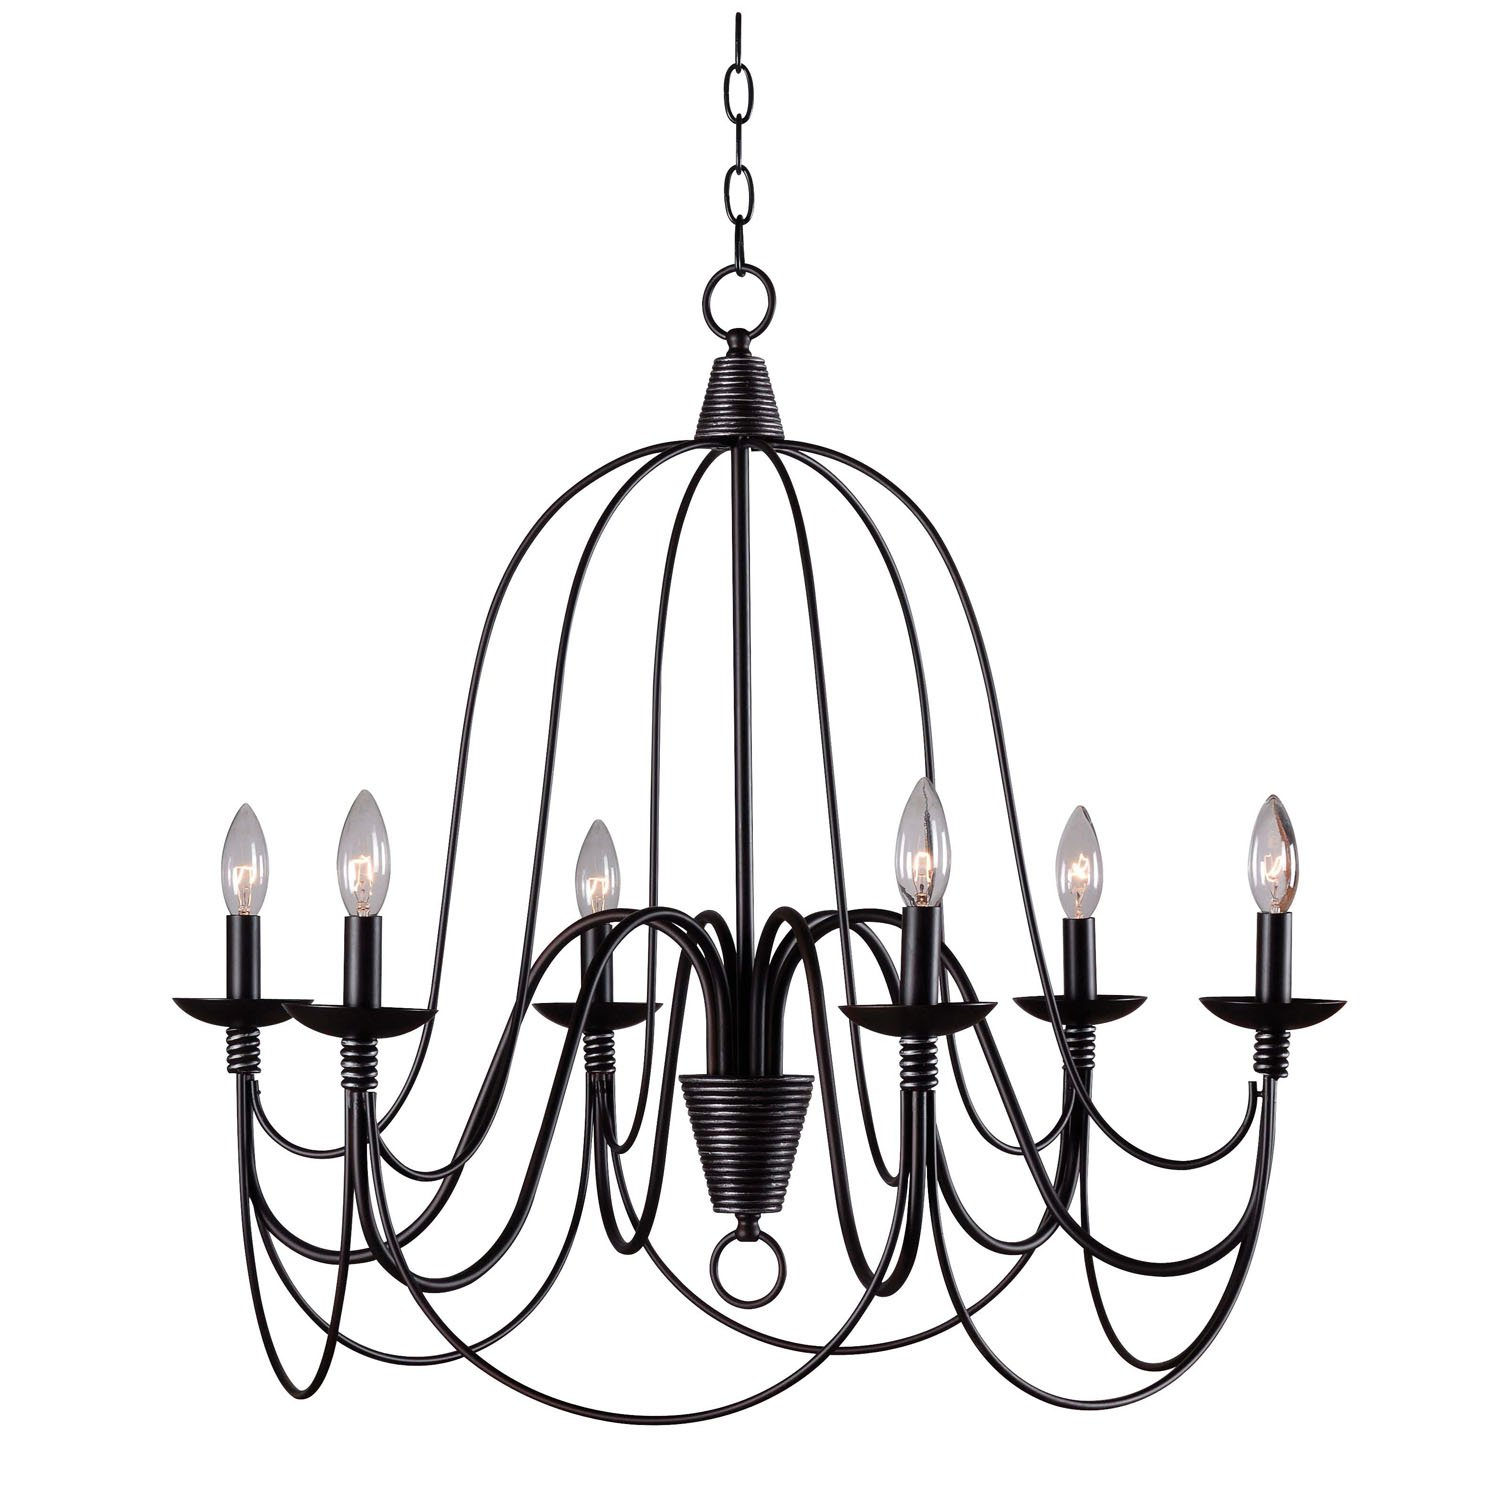 Kenroy Home ORB Pannier 6 Light Chandelier Blackened Oil